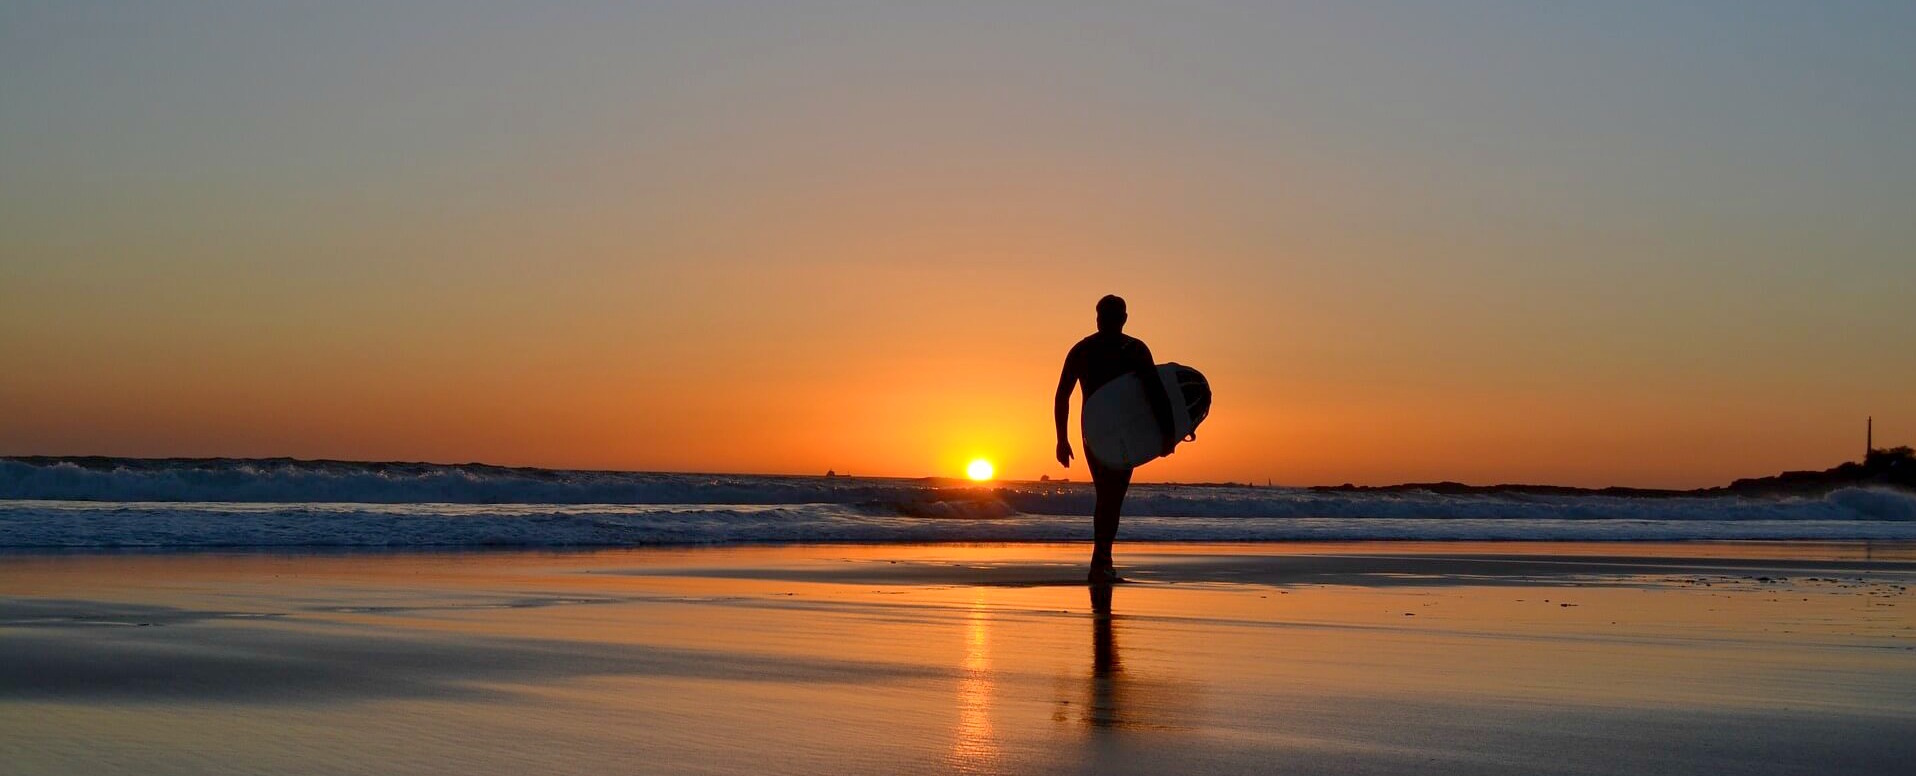 Surfing Experiences - Ibiza